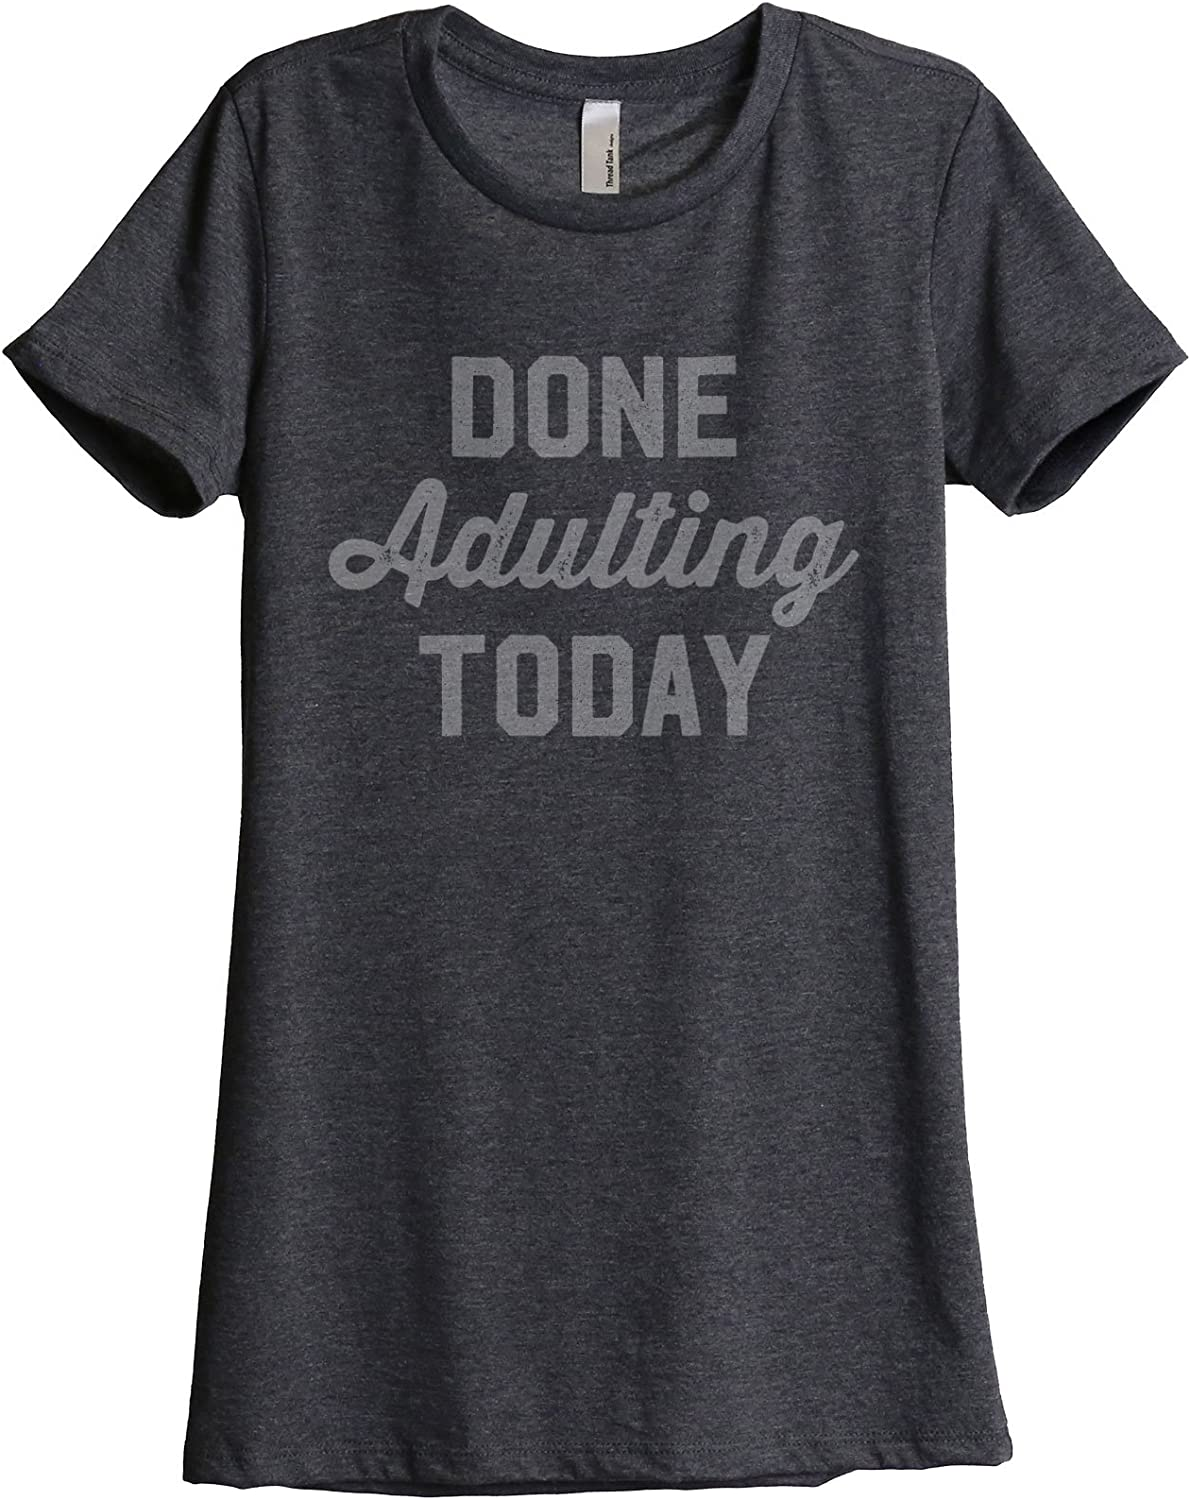 Done Adulting Today Women's Fashion Relaxed T-Shirt Charcoal Super popular price specialty store Tee